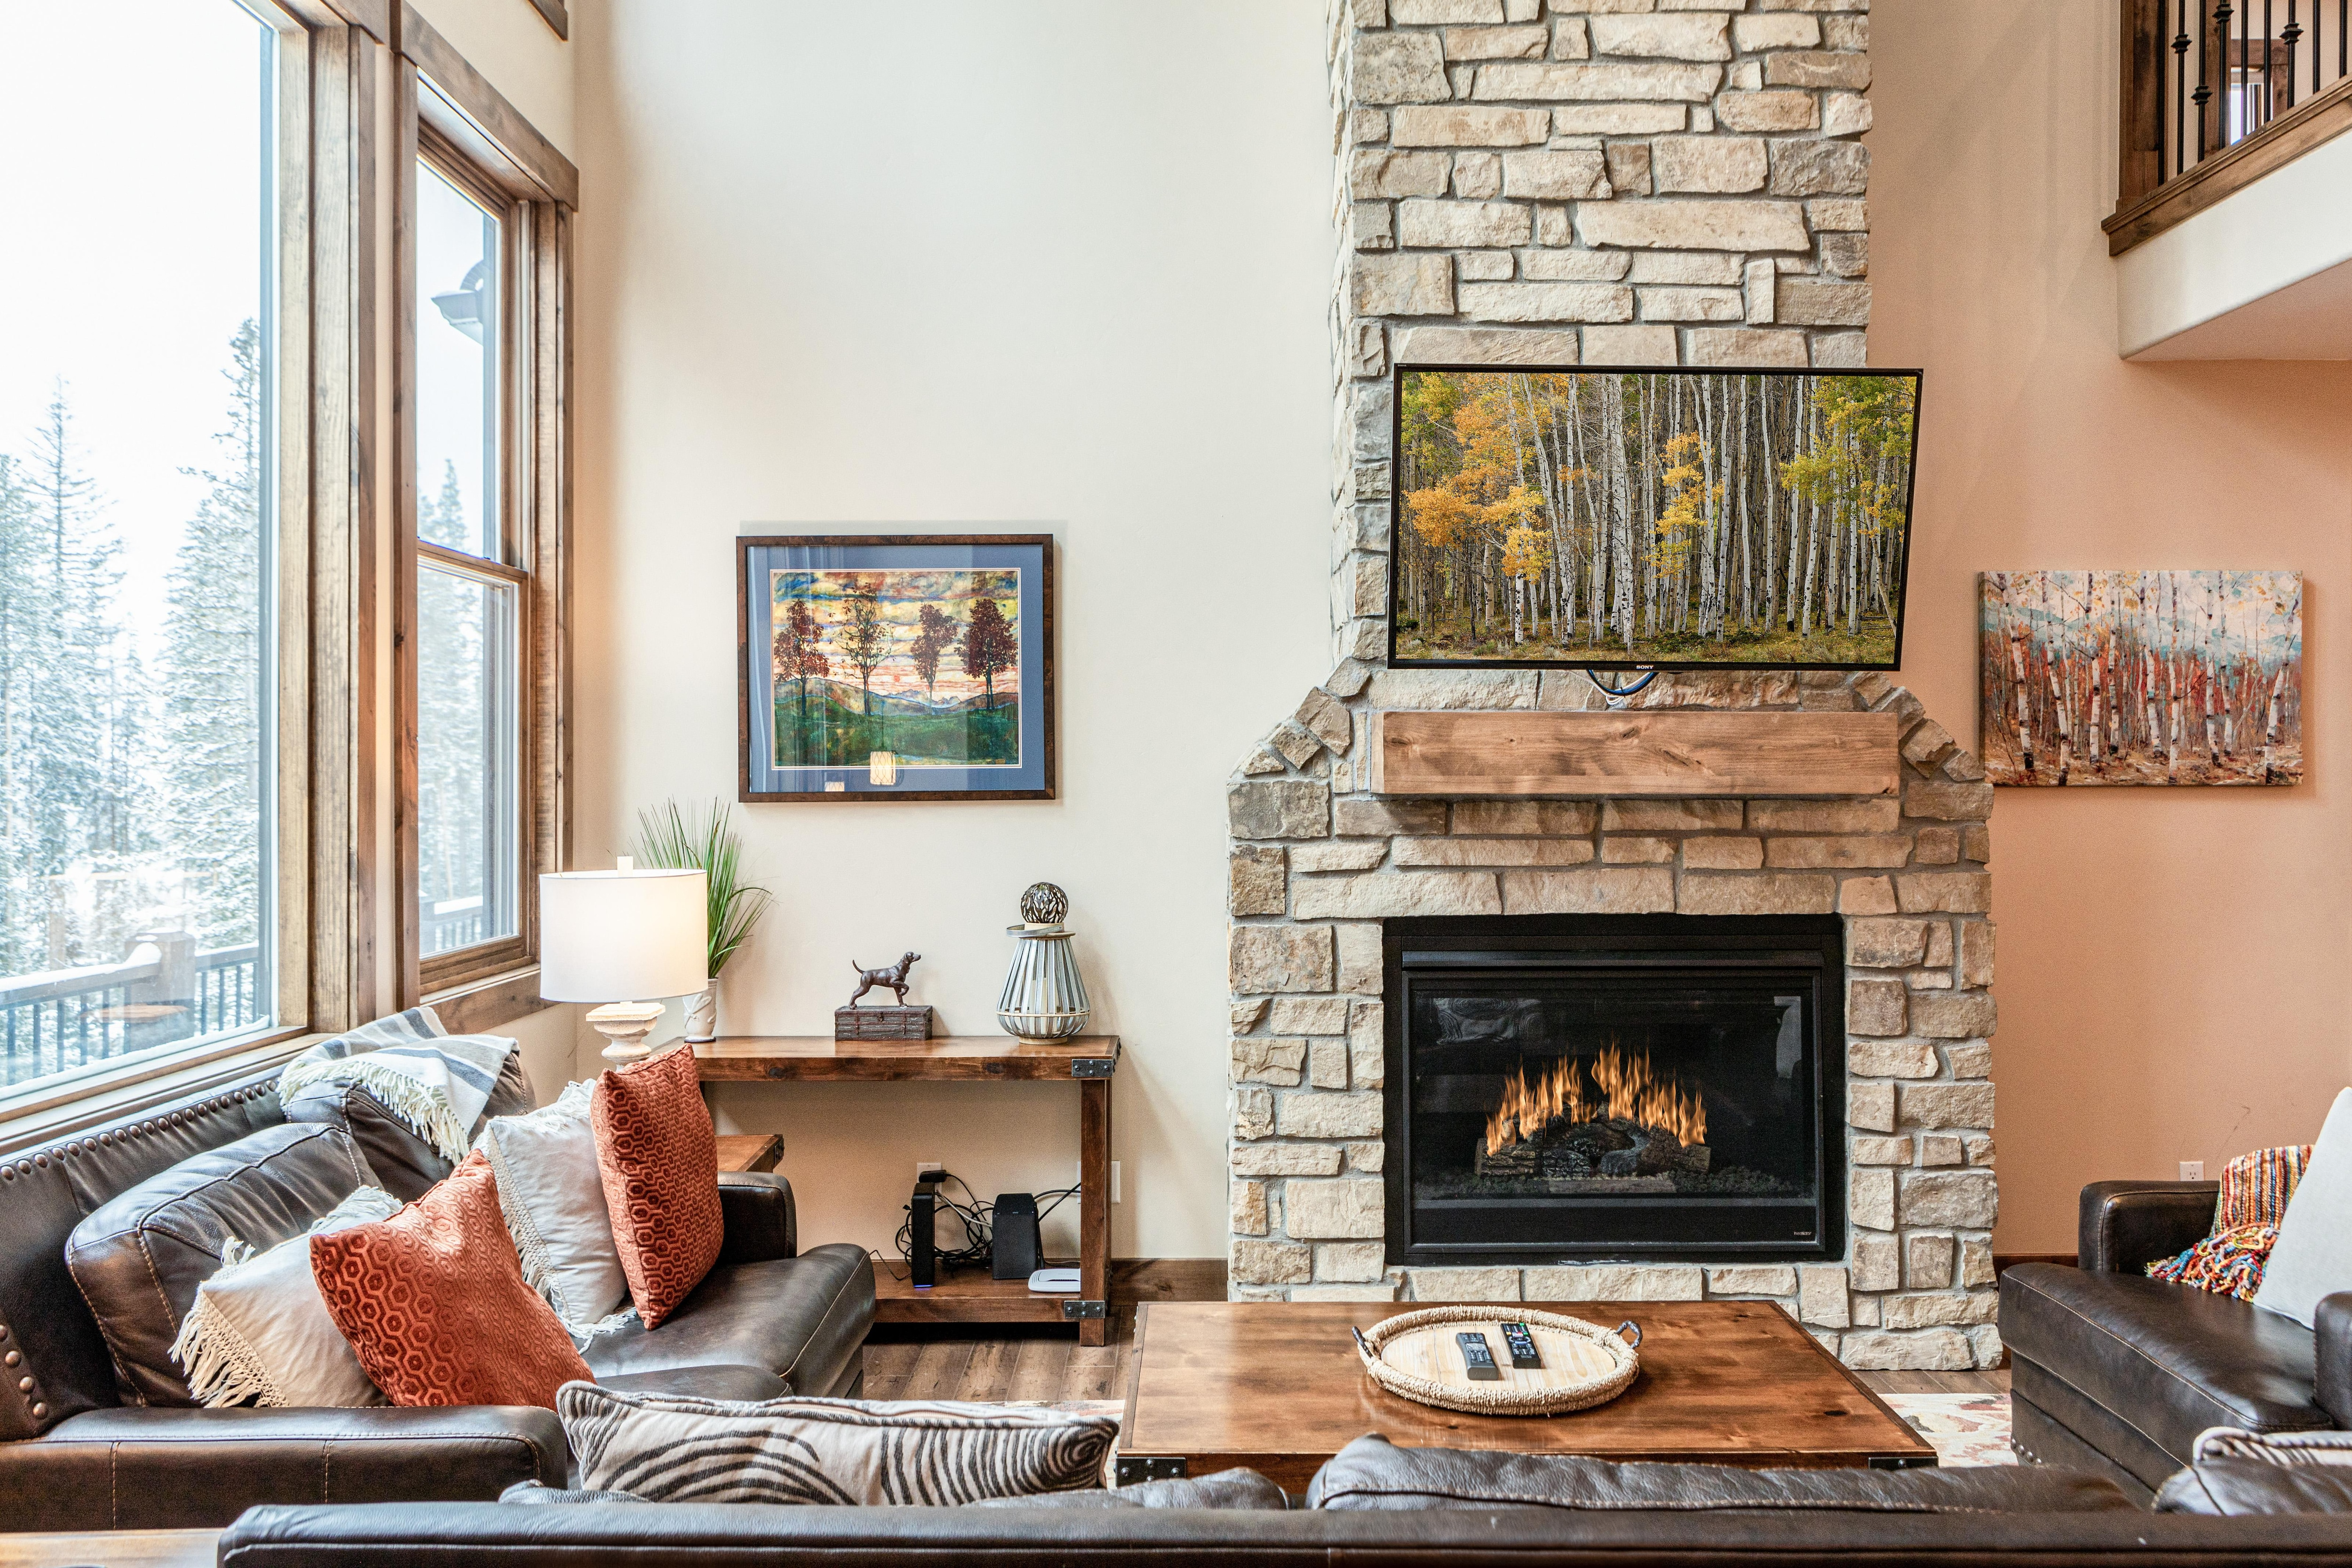 Unit 1: Cozy up next to the gas fireplace and enjoy forested views through floor-to-ceiling windows.